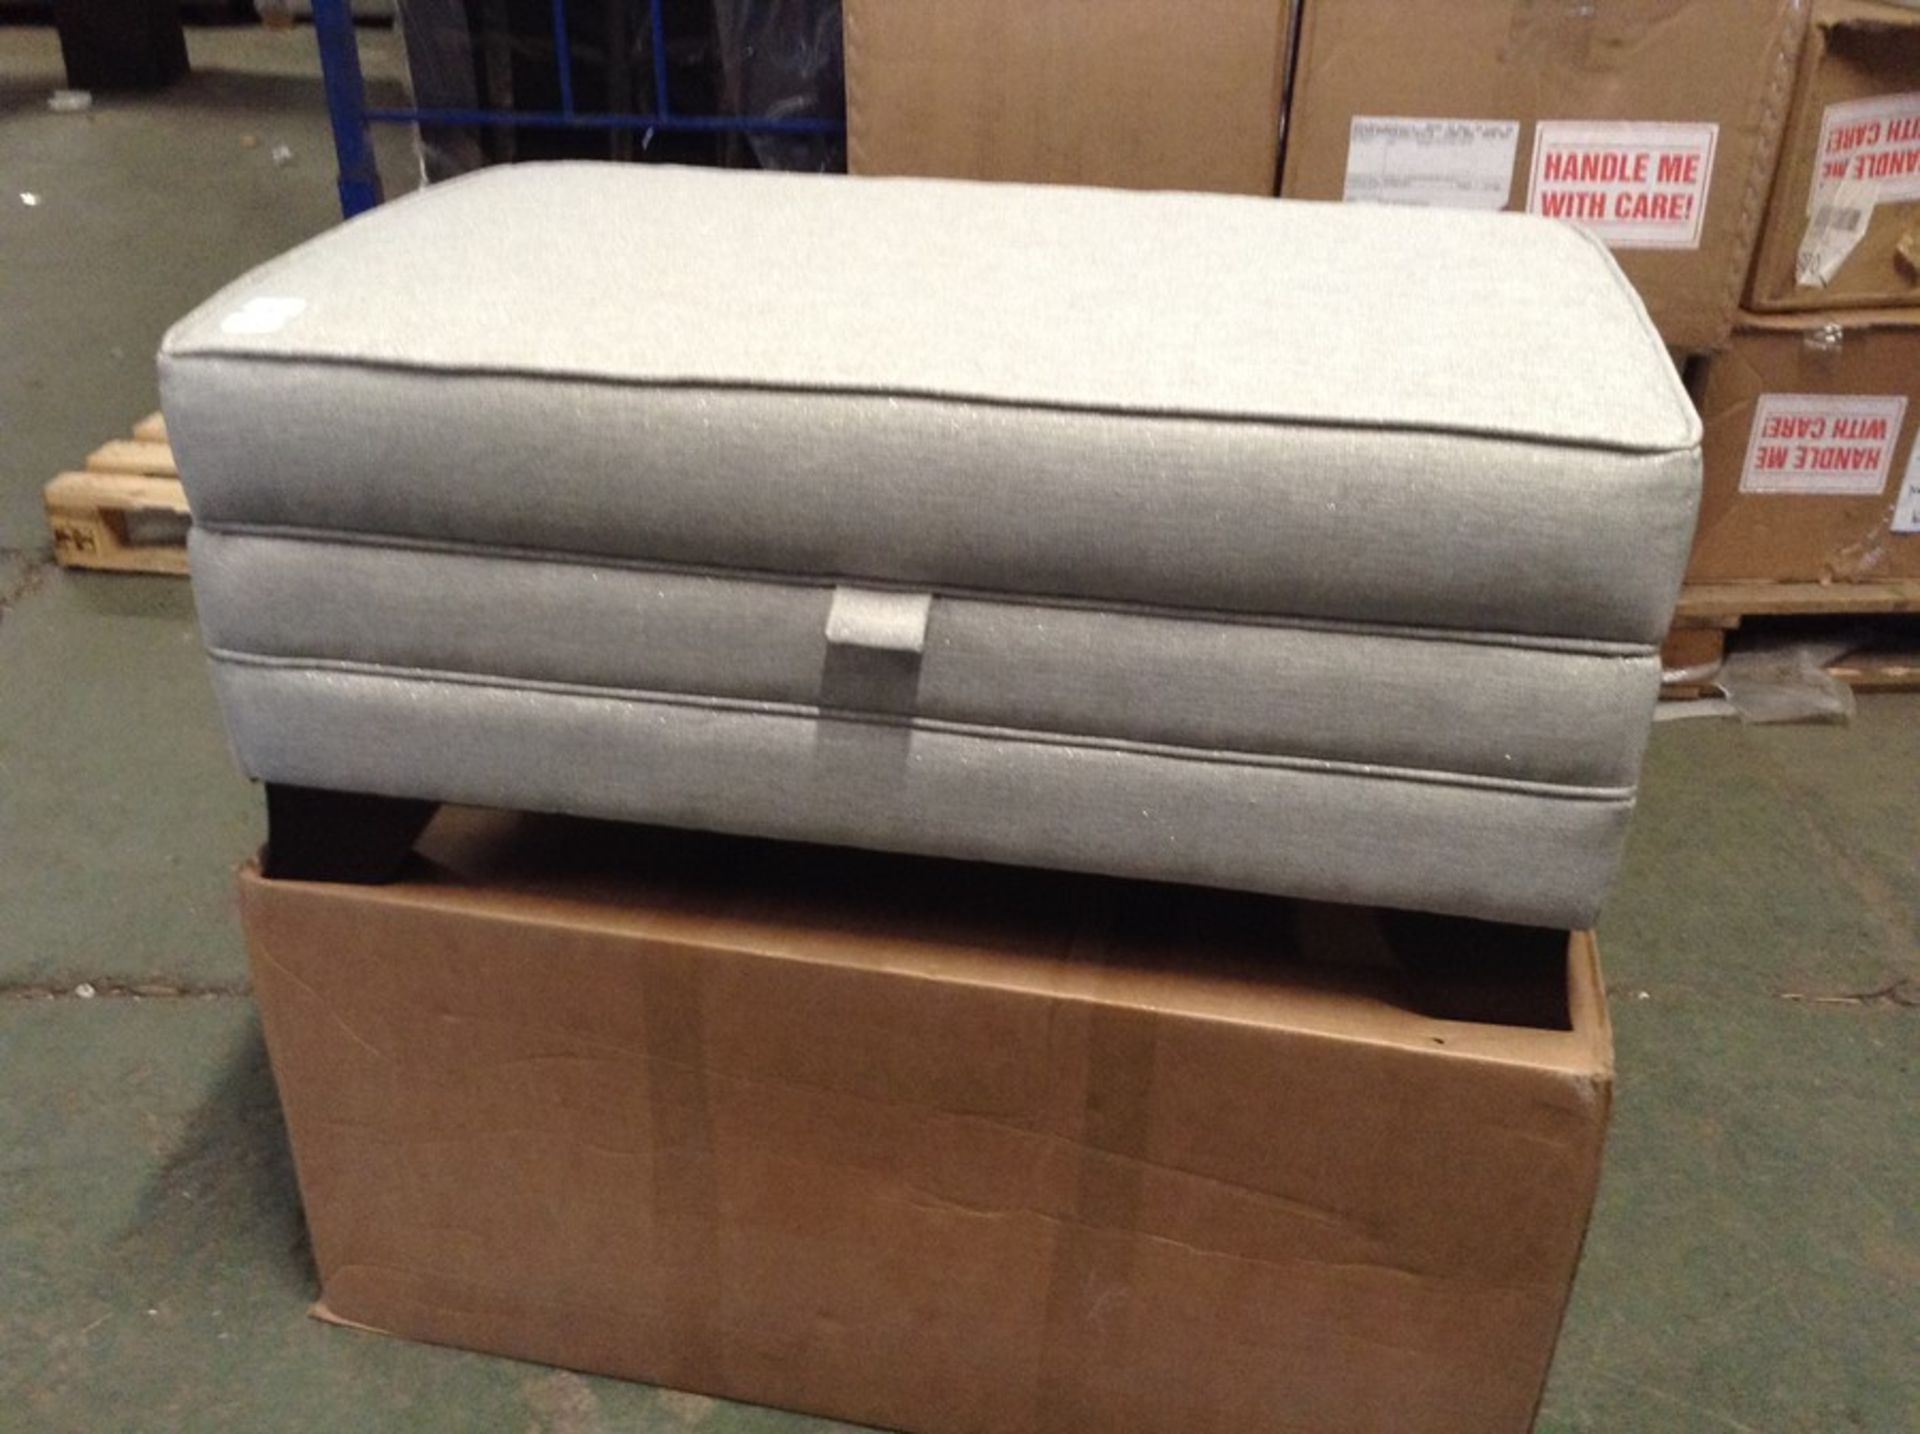 SILVER AND GREY STORAGE FOOTSTOOL (HH29_714887-3)